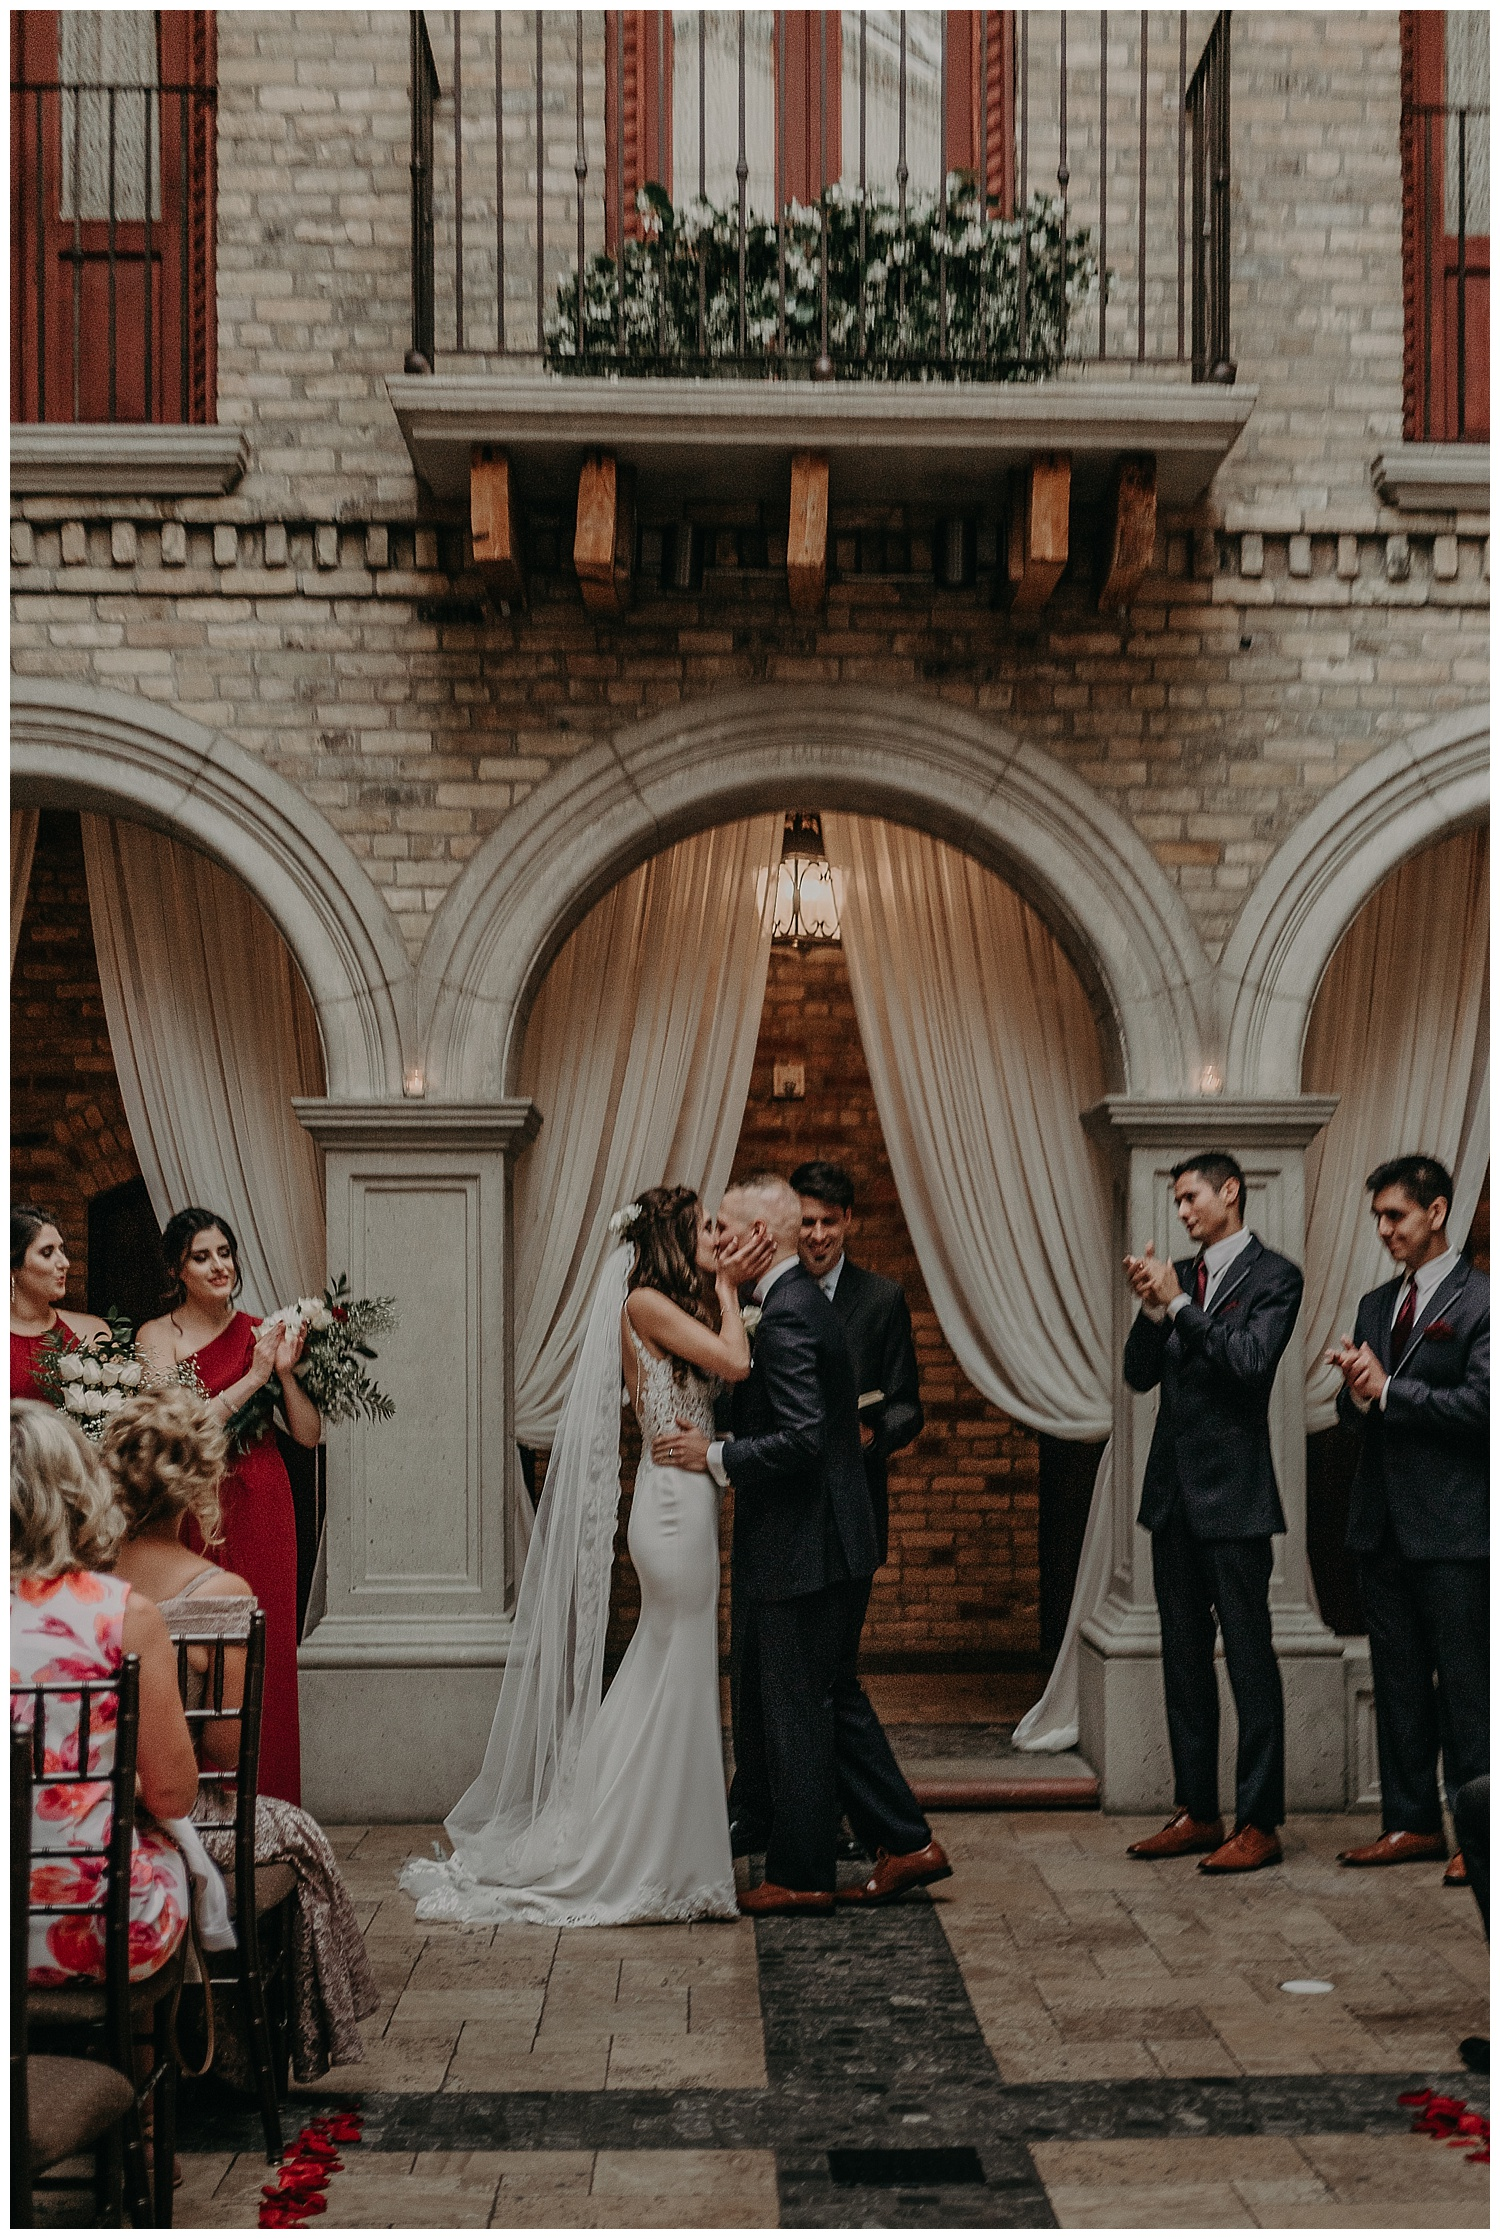 Katie Marie Photography | Hamilton Ontario Wedding Photographer | Kitchener Wedding Photographer | Hacienda Sarria Wedding | Cambridge Wedding_0143.jpg